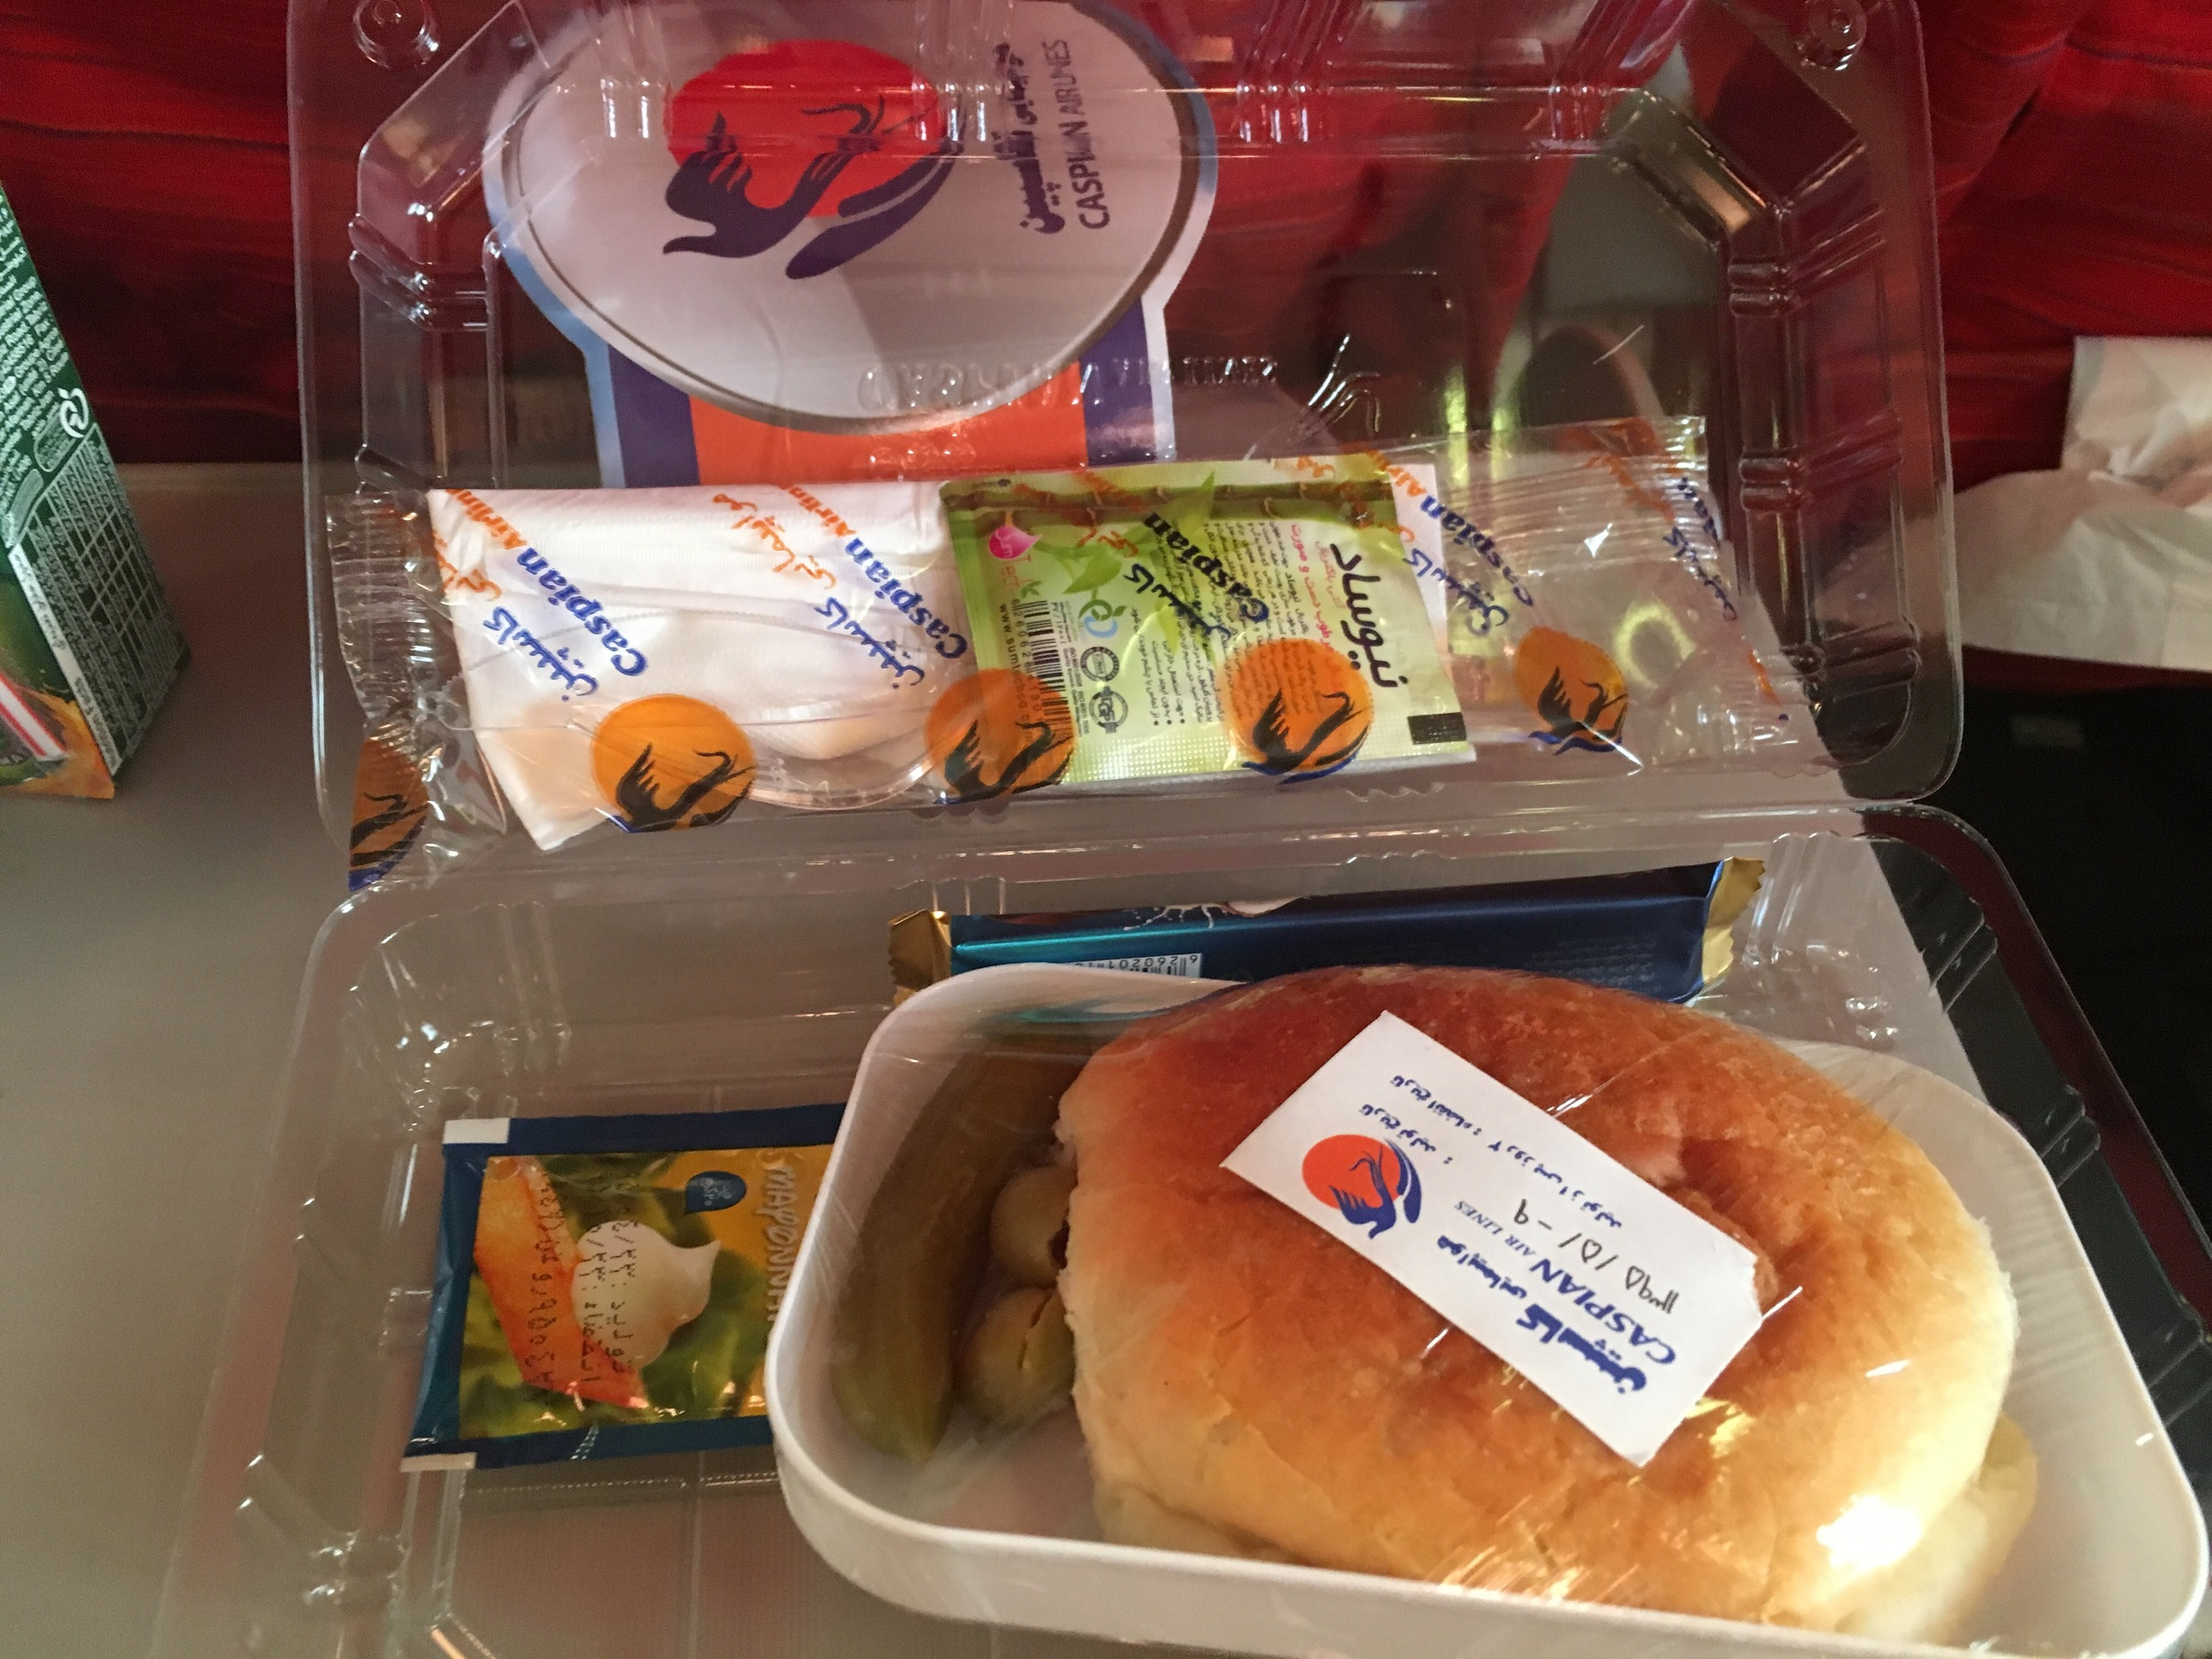 The quite tasty inflight meal.